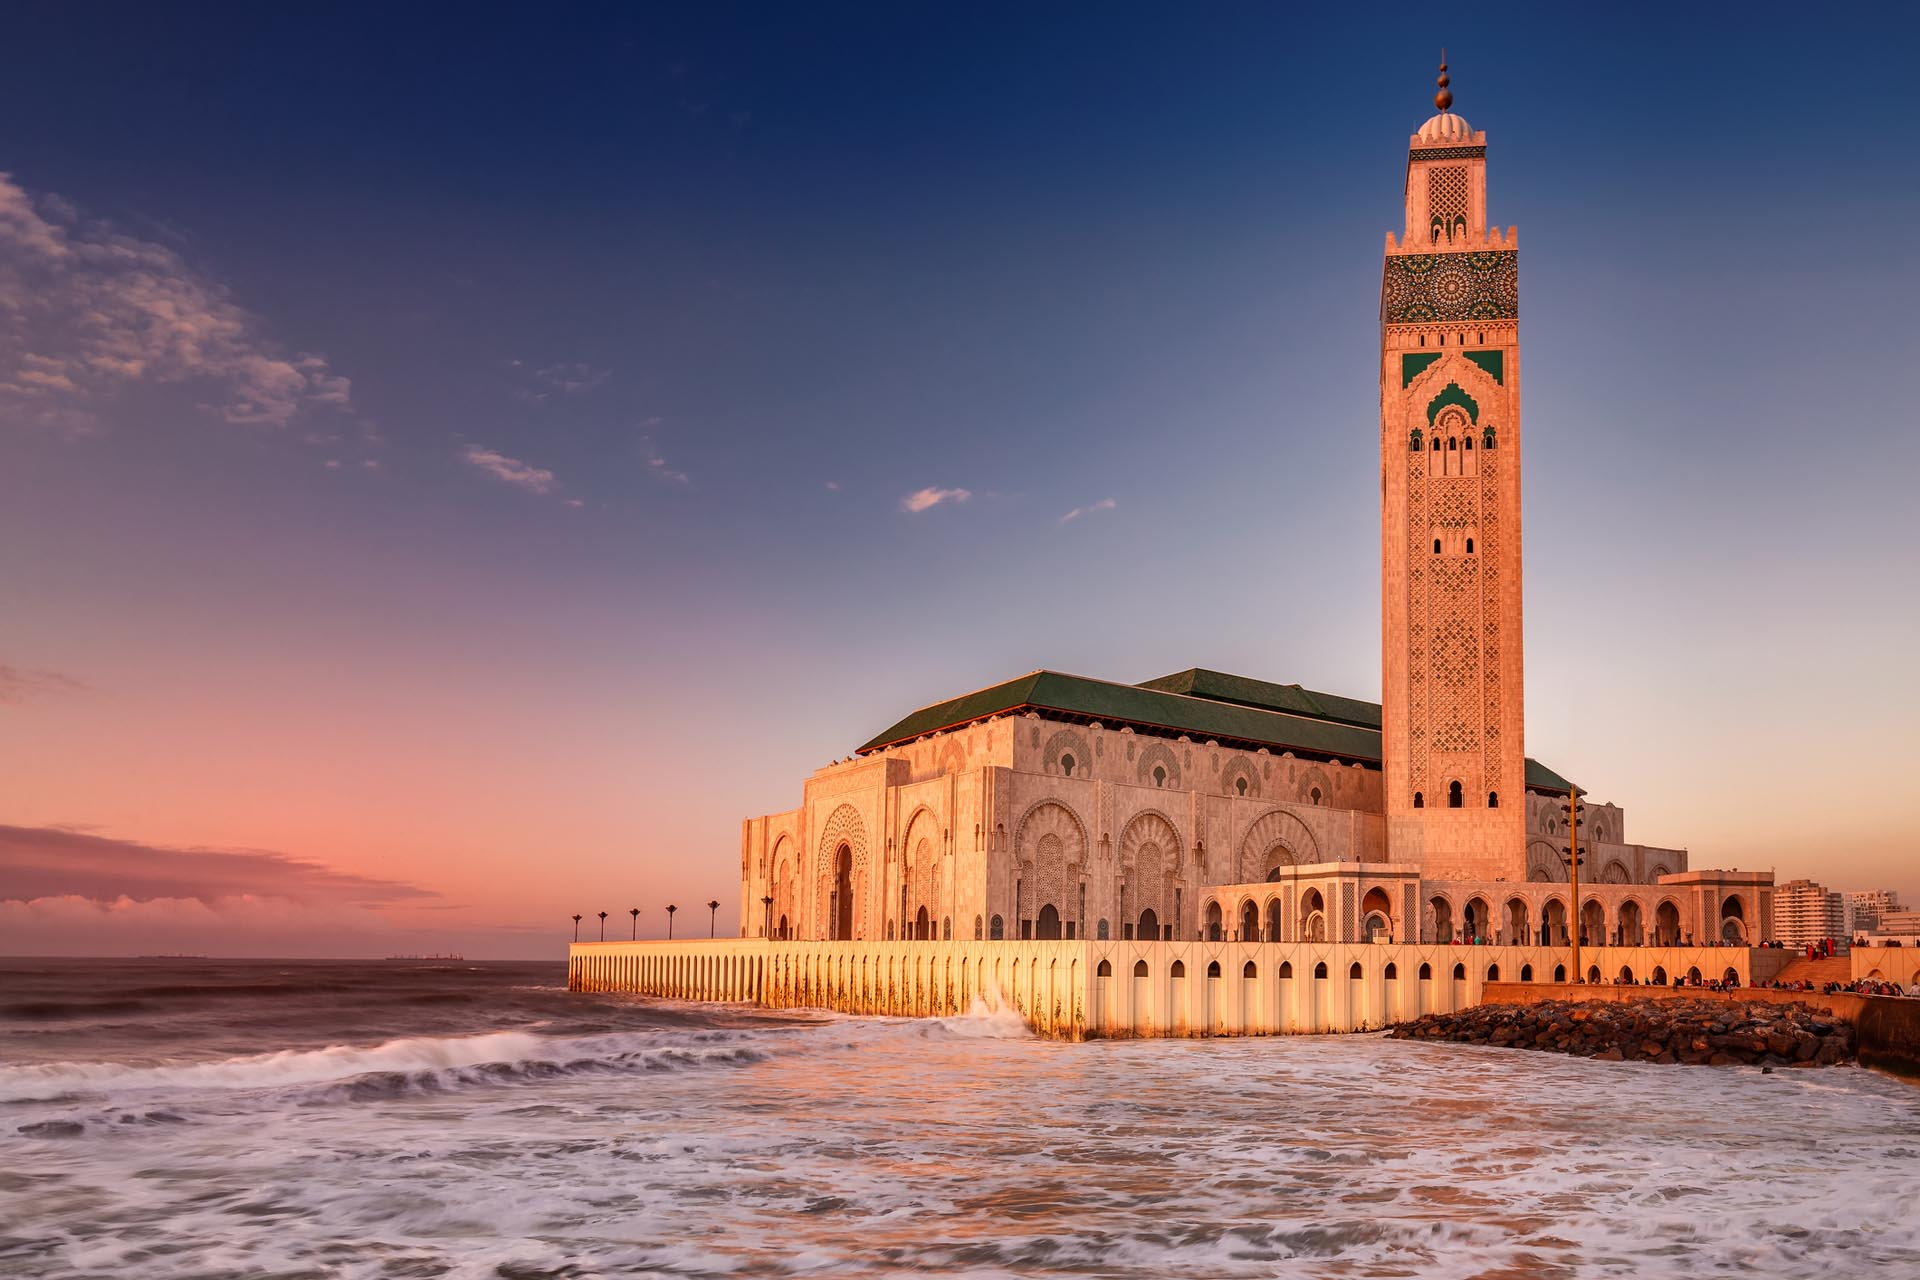 Attractions near Kenzi Basma Hotel in Casablanca, Morocco